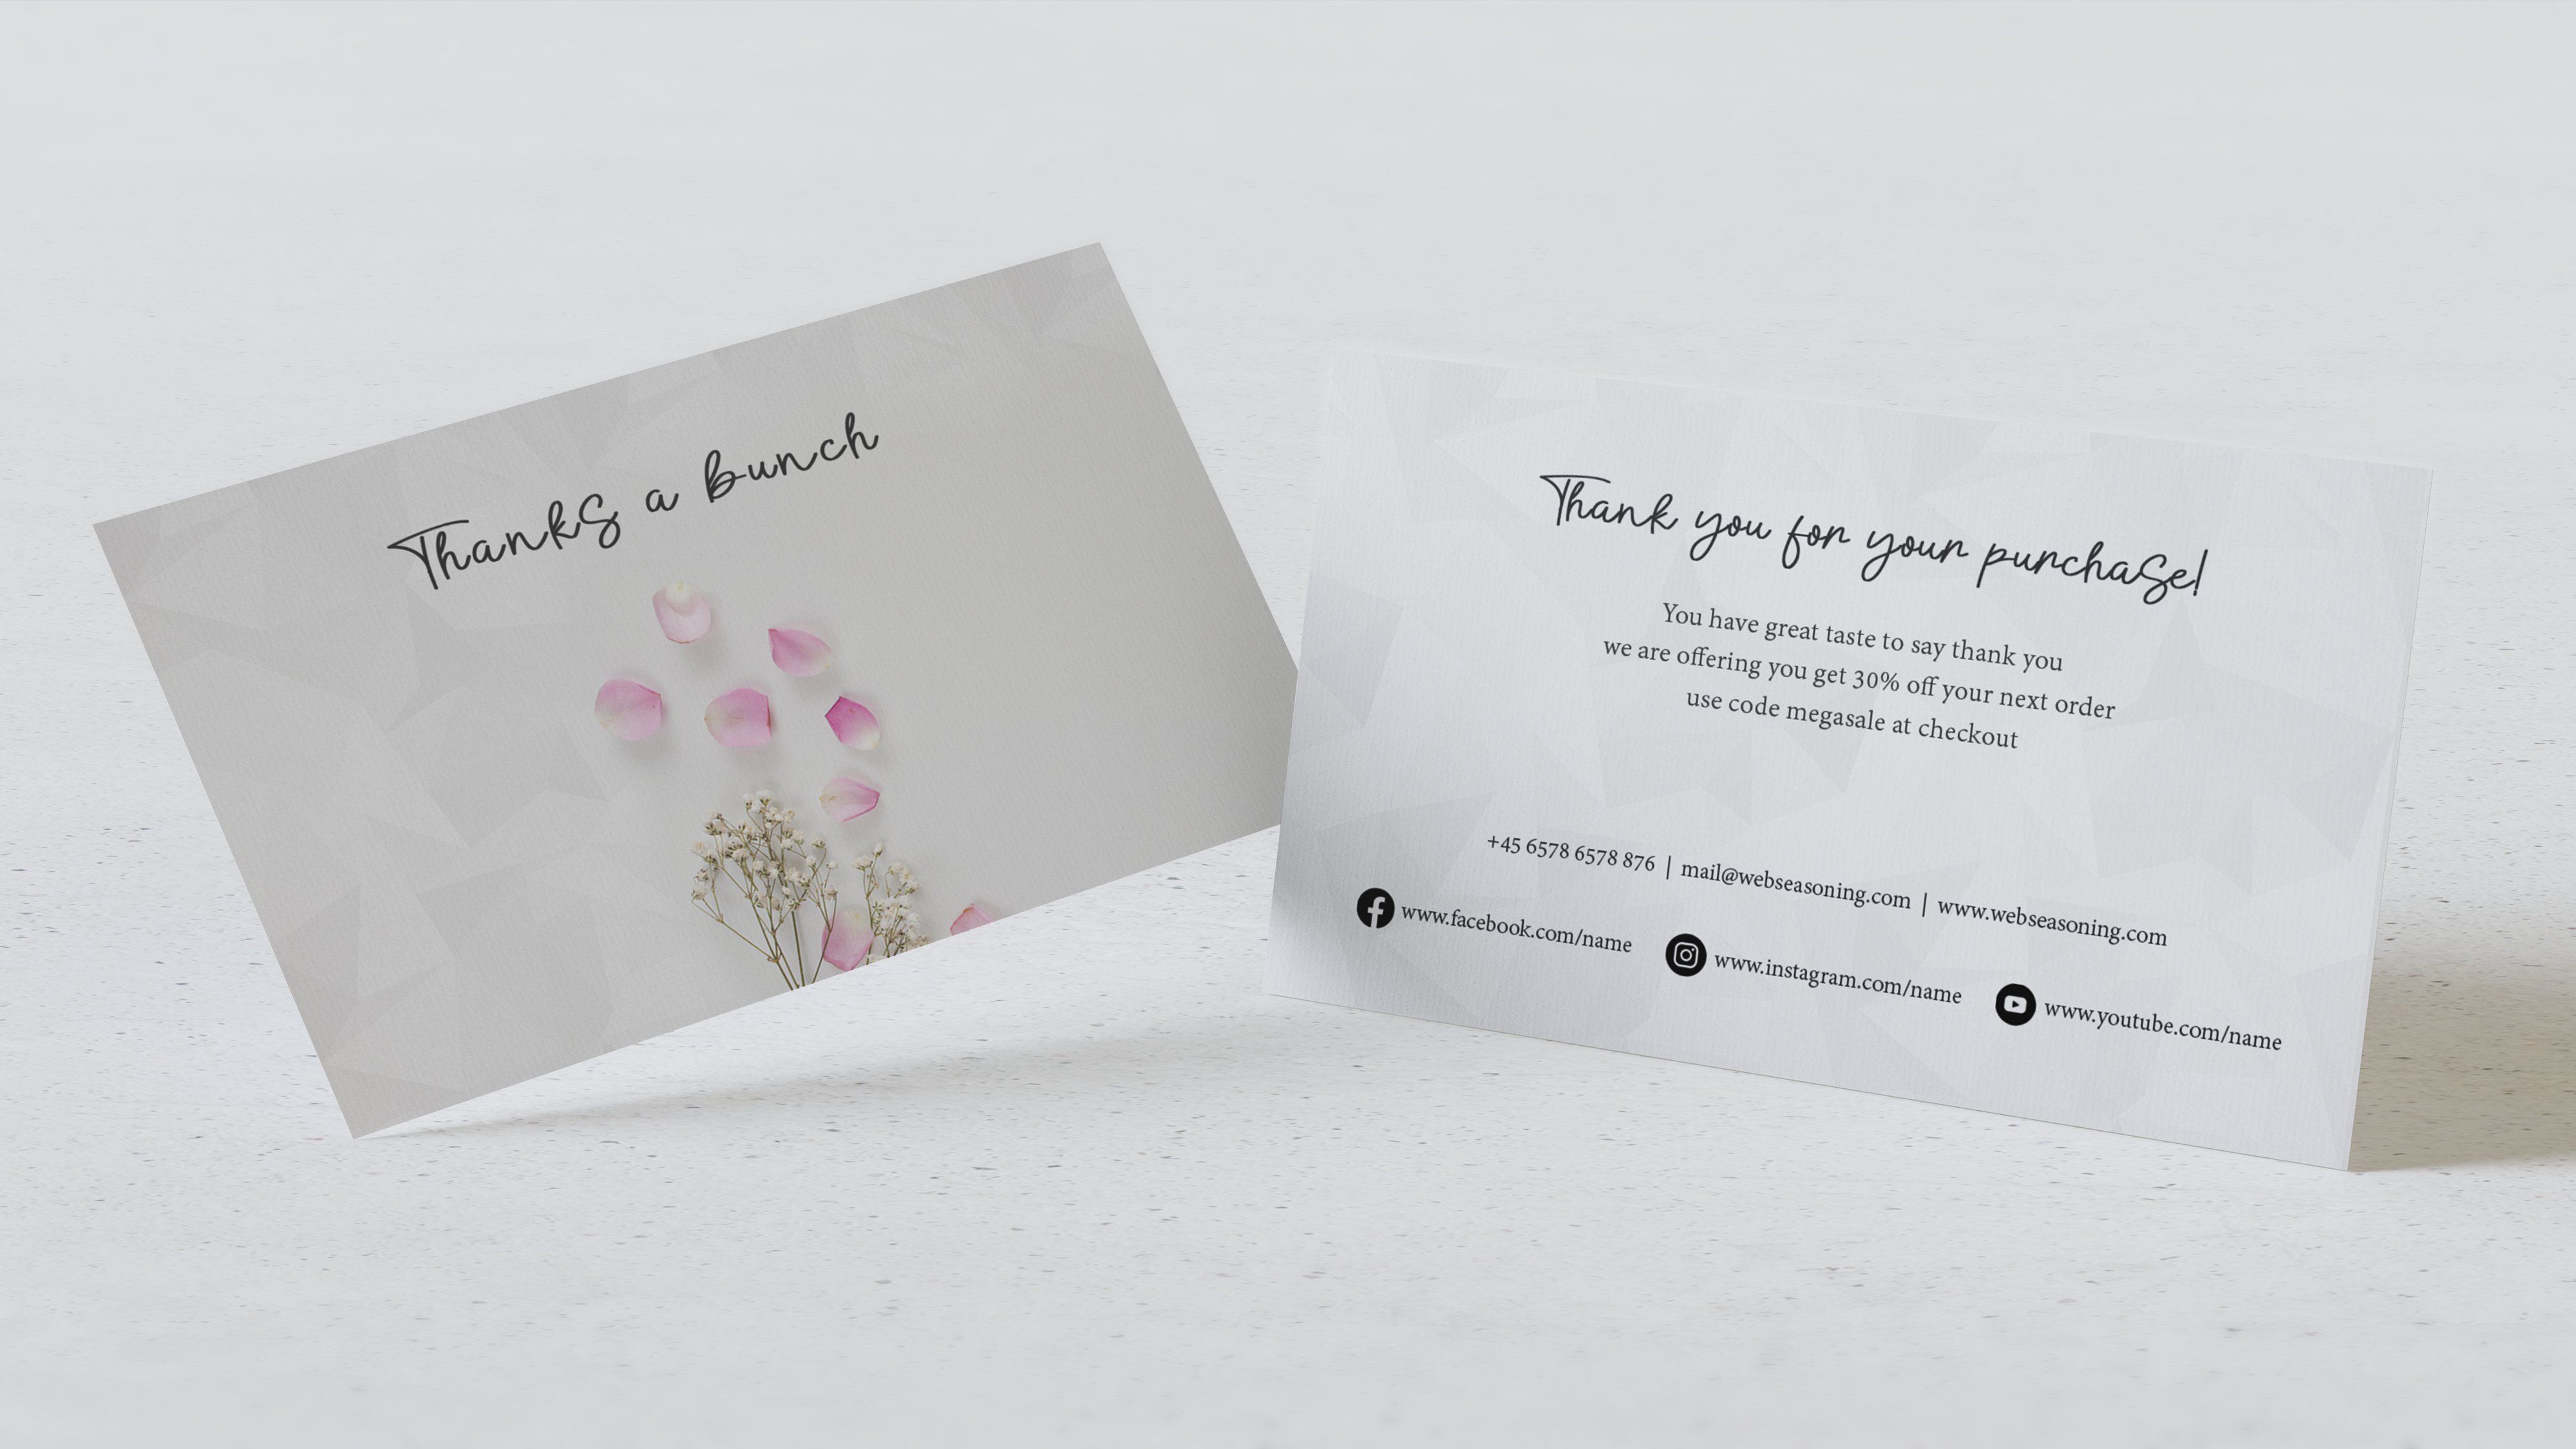 The beautiful floral thank you card